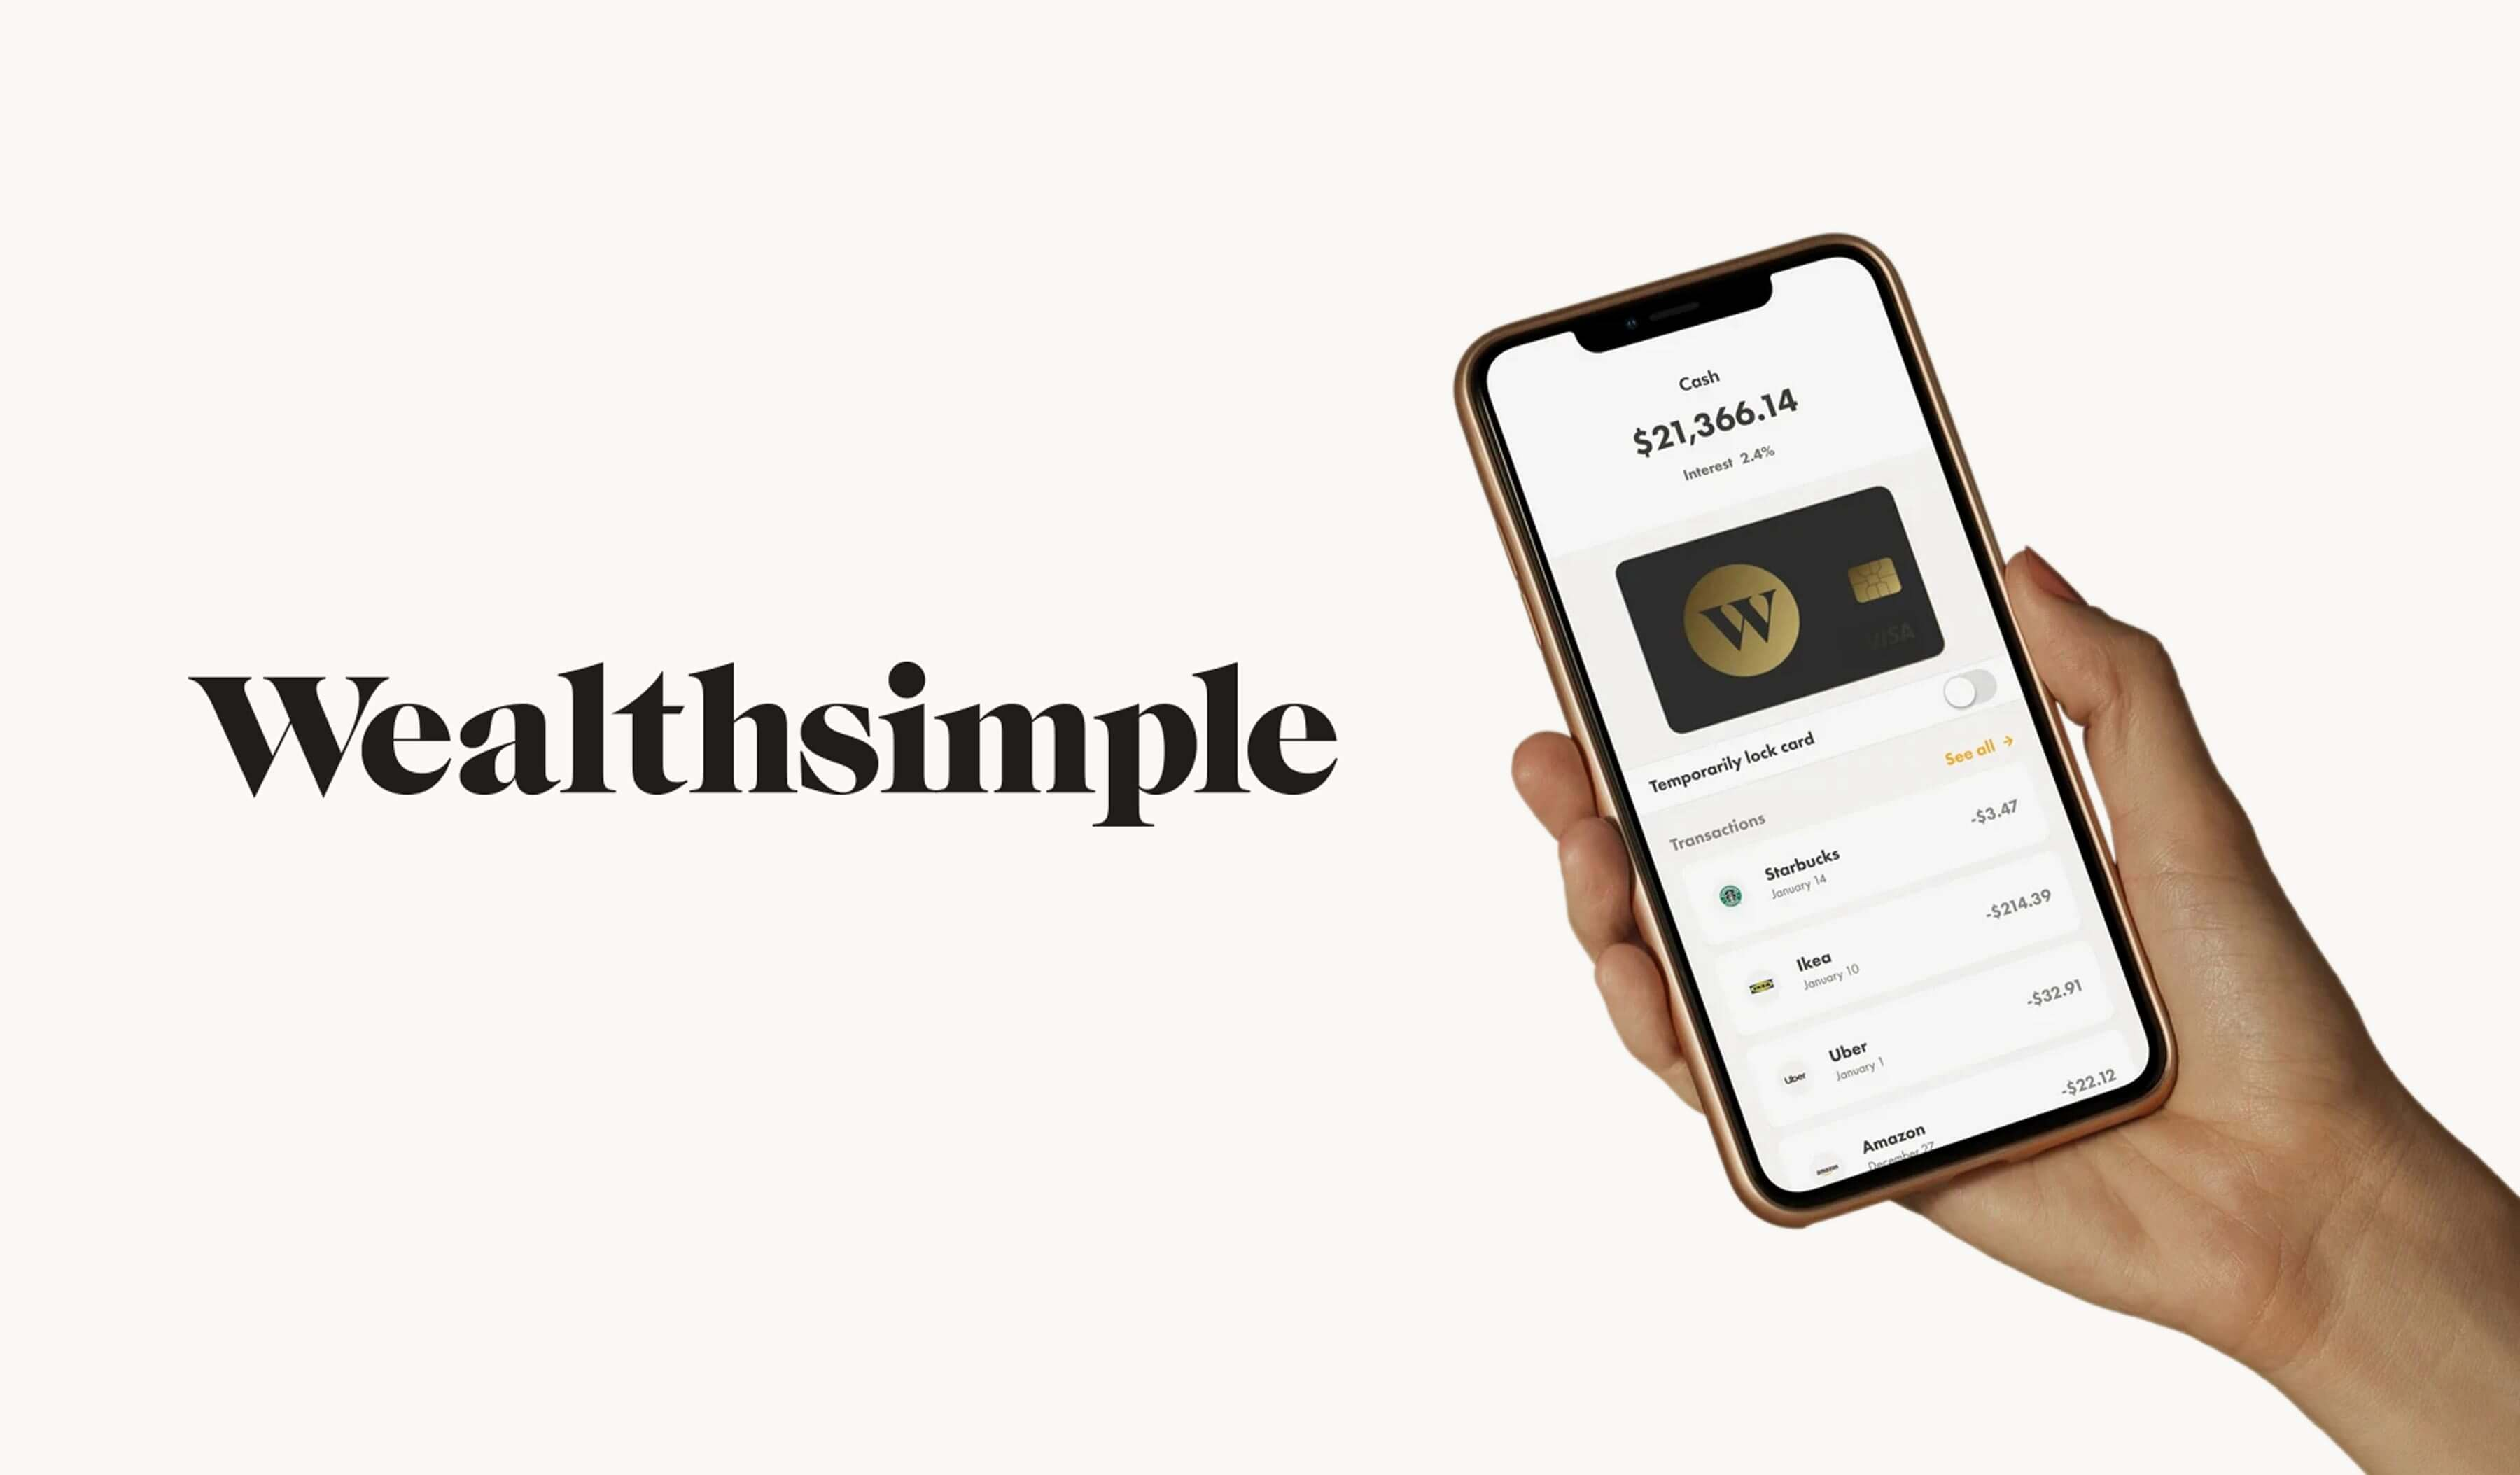 Wealthsimple Takes On Big Banks with New Spending Account | Digital Magazine